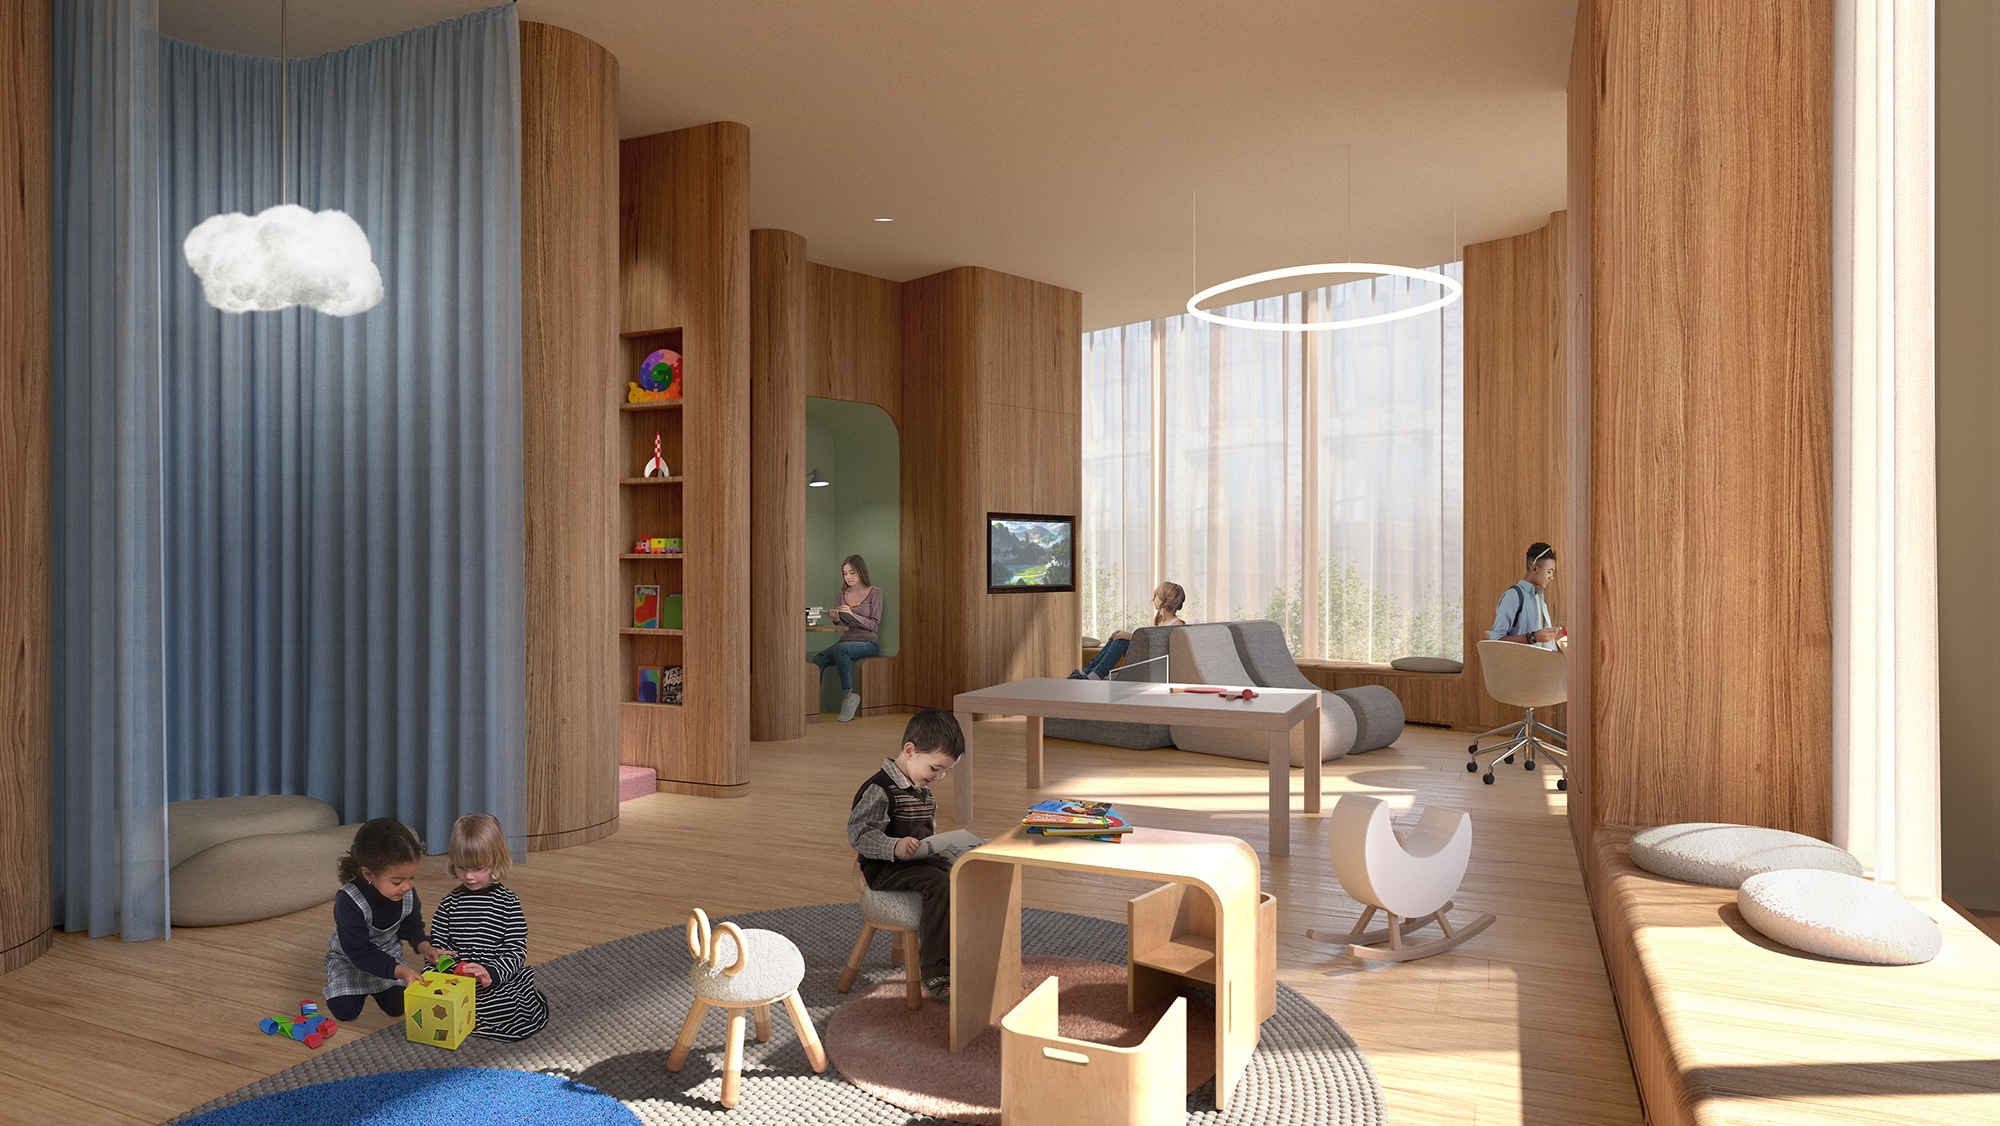 Playscape at The Xi luxury condominiums in New York. Tv area with a couch, quiet space with cushion and long drapes.